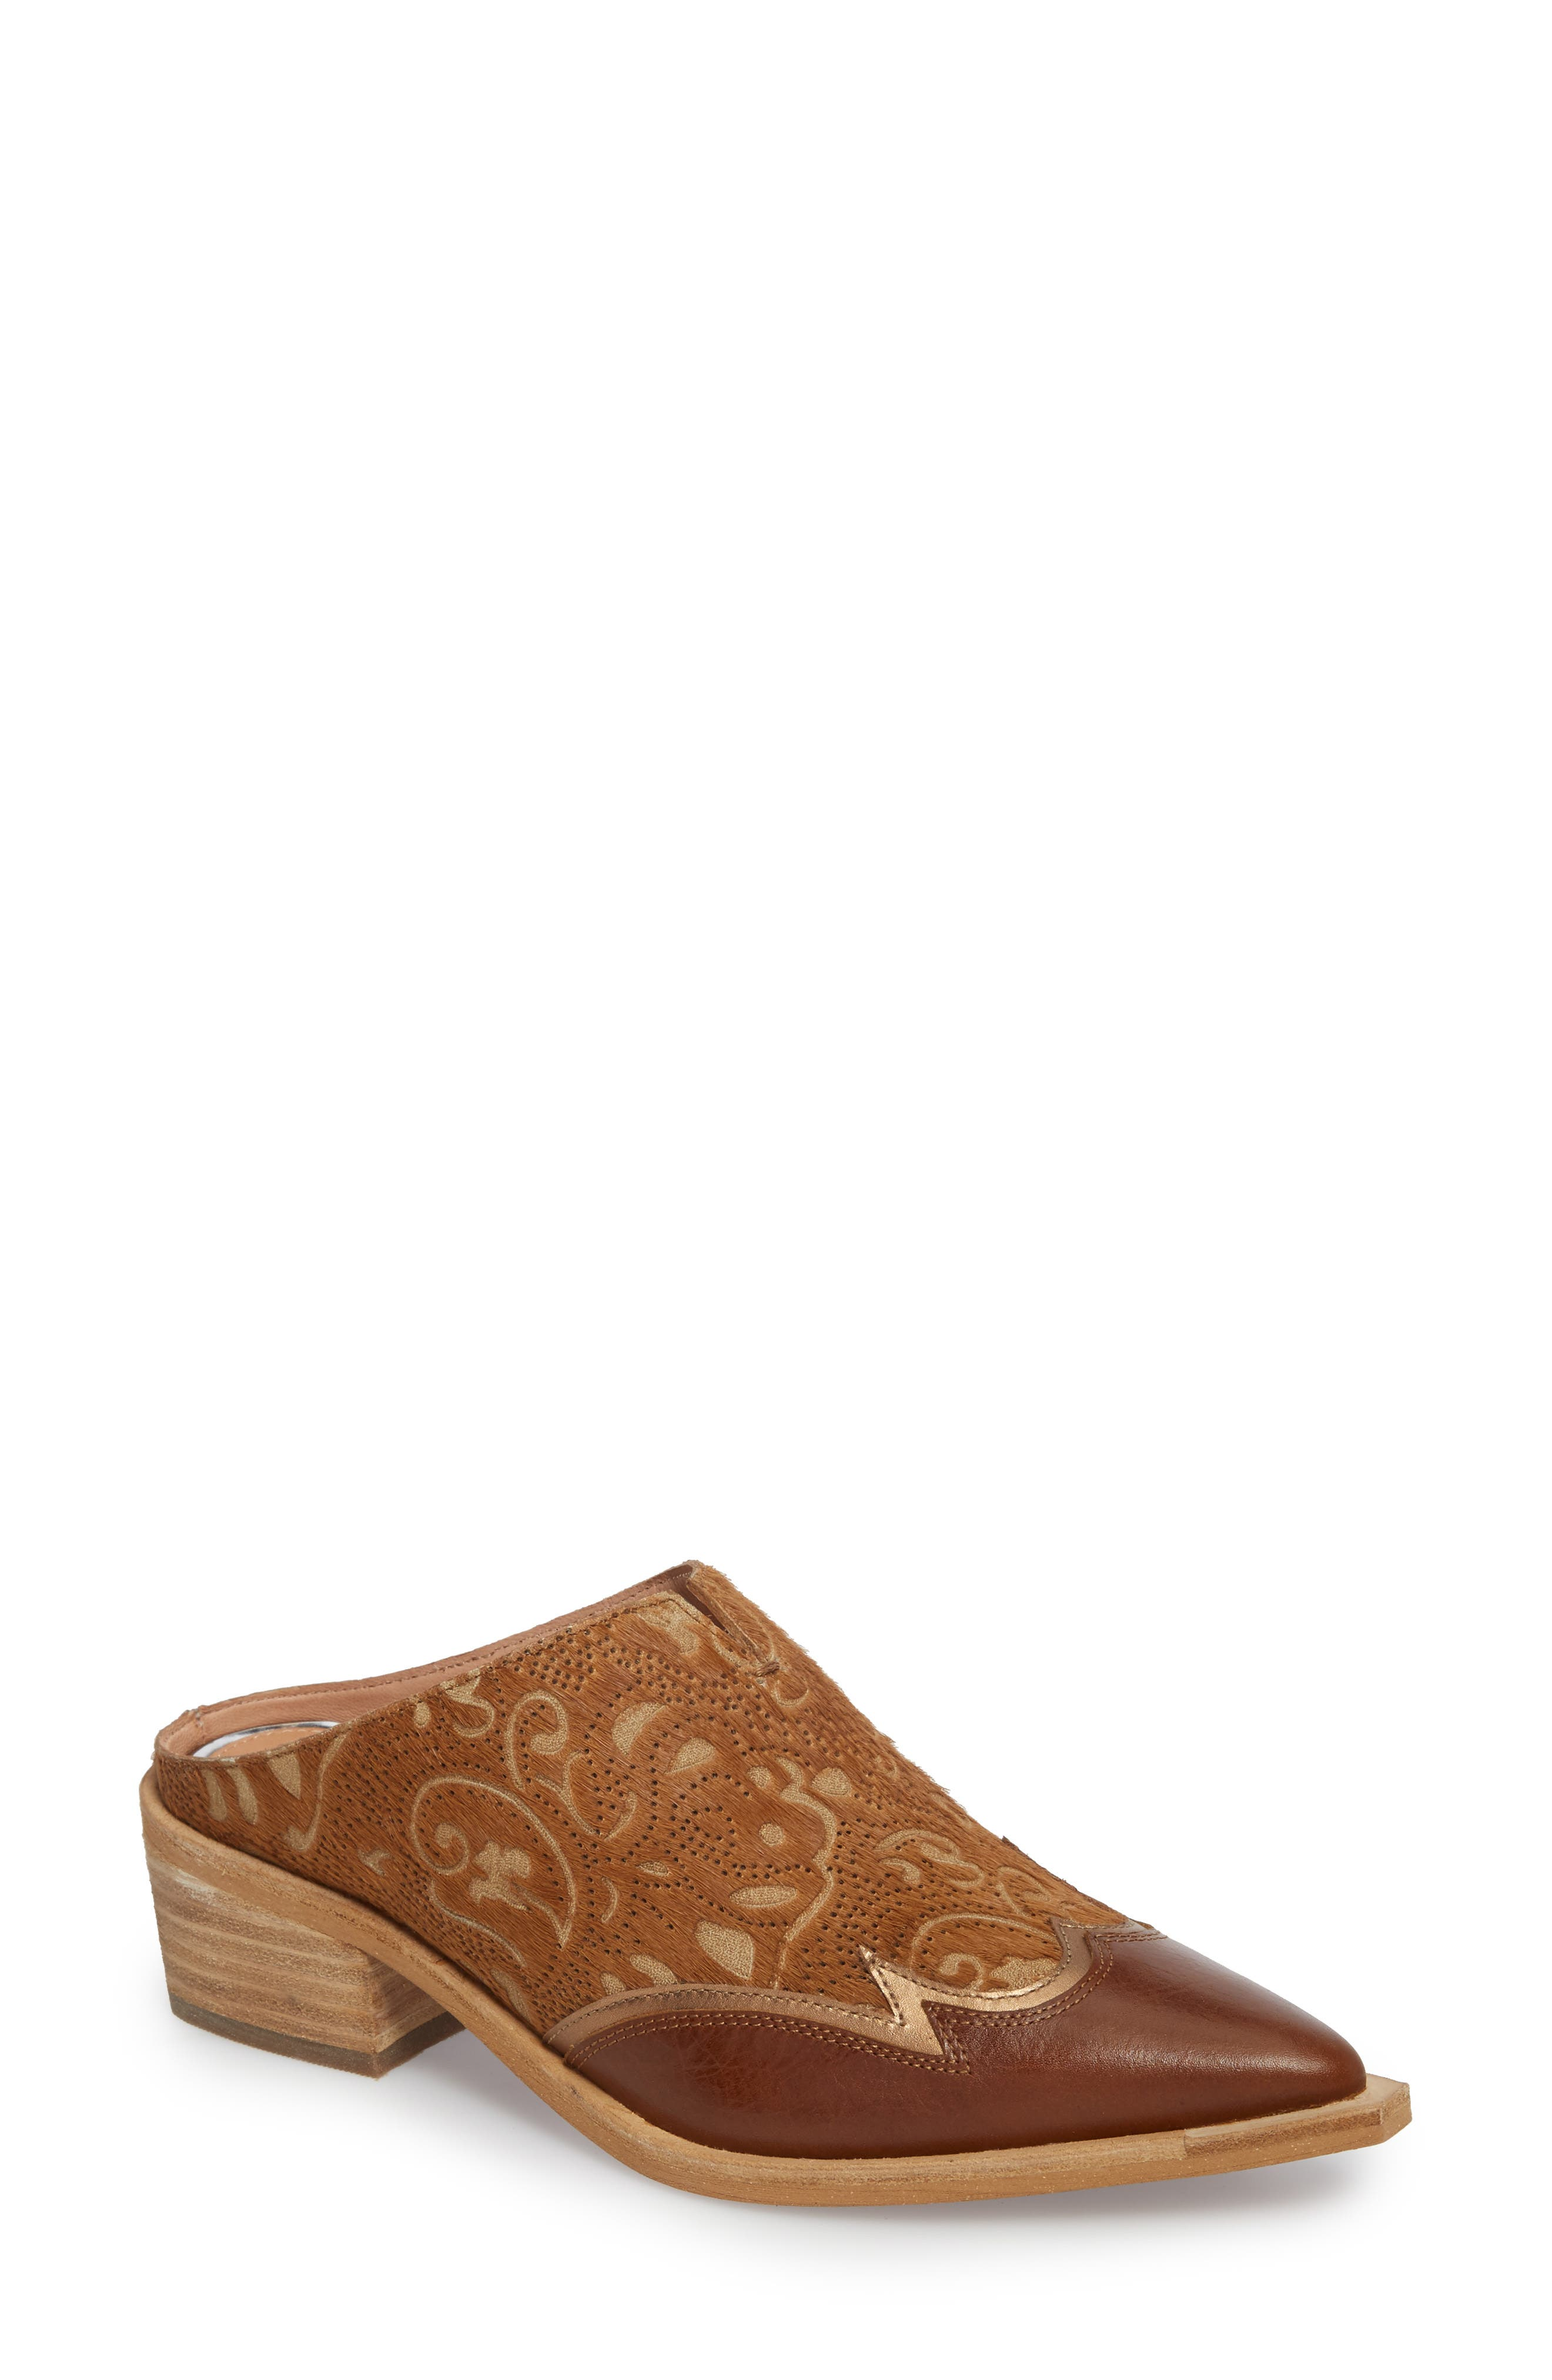 Waylon Genuine Calf Hair Western Mule,                         Main,                         color, Camel Leather